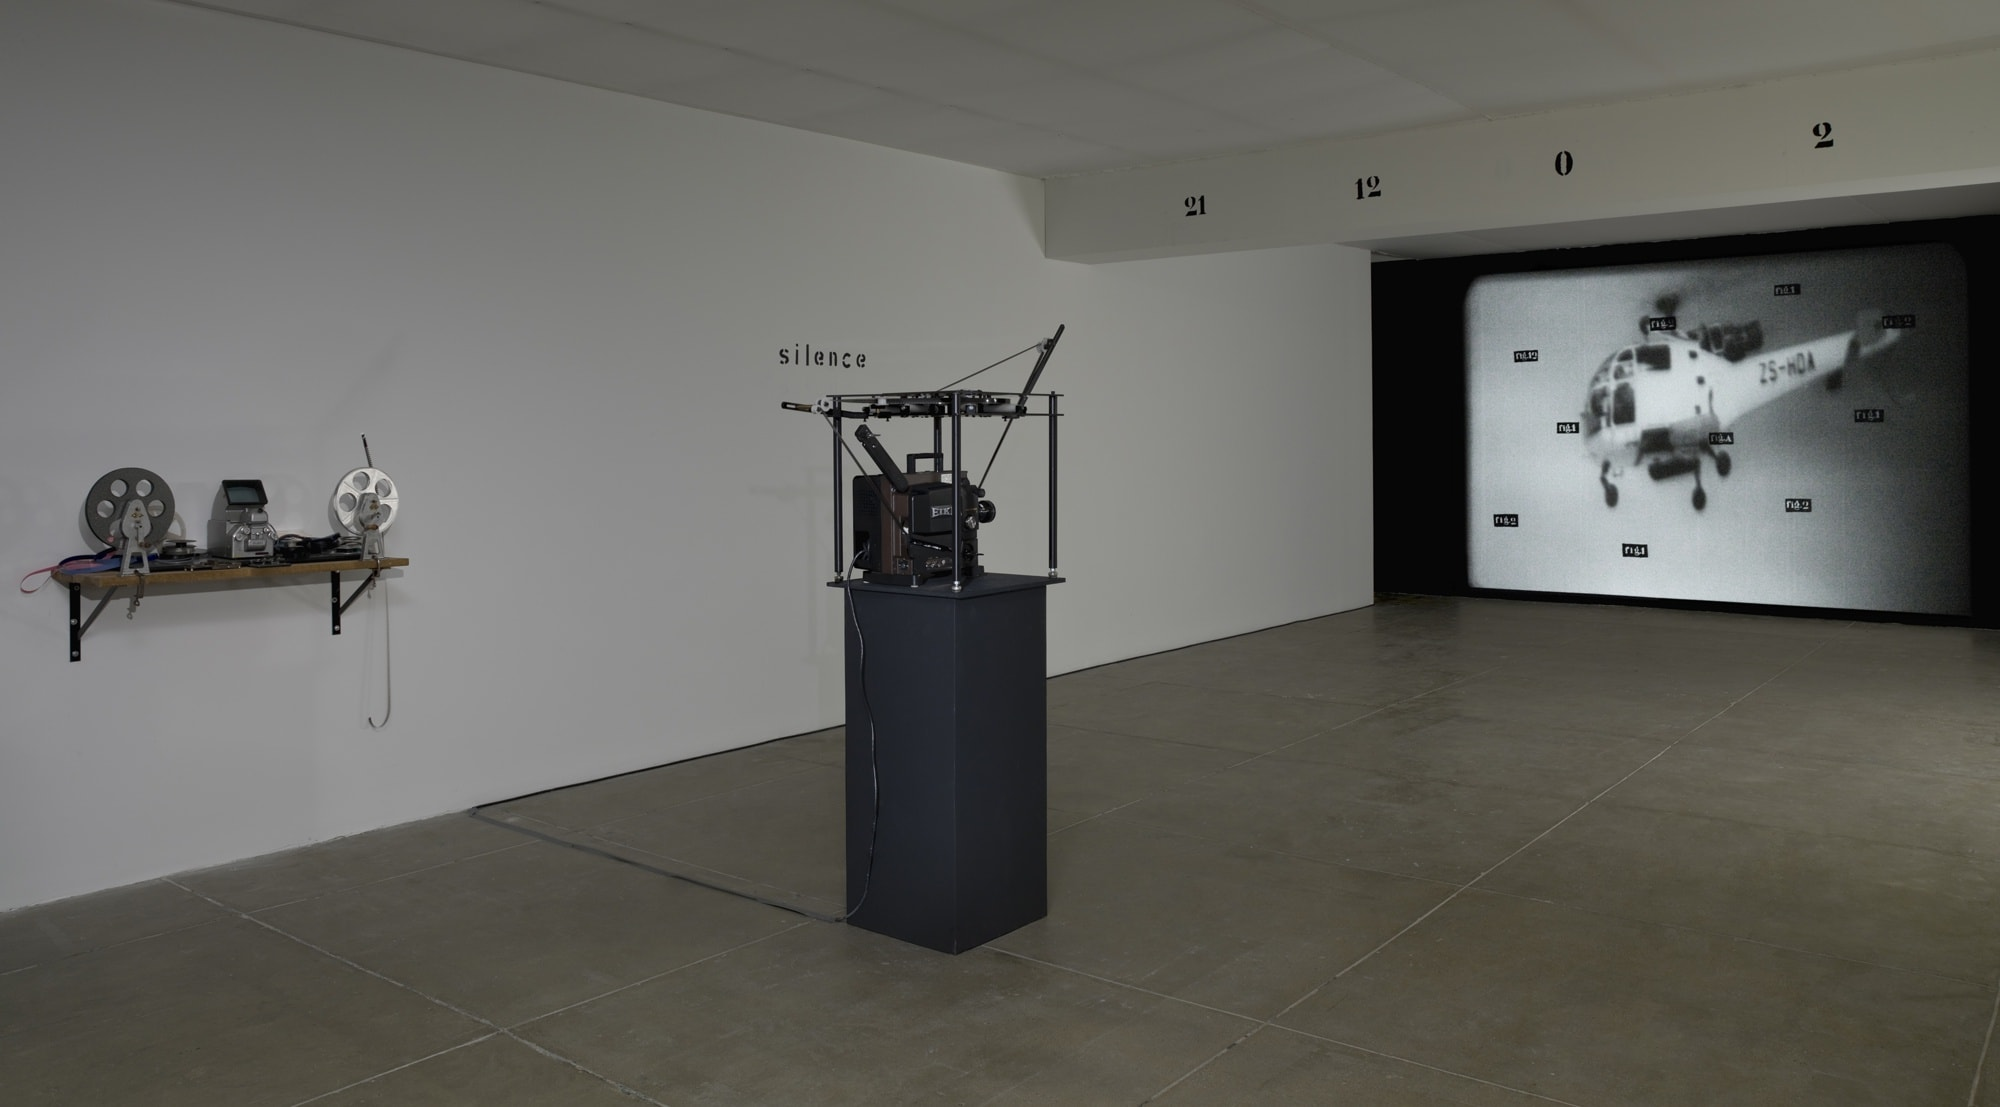 In a white room with a beige floor, a projector runs, showing a large image of a helicopter with small scattered text over it. A beam on the ceiling of the room reads: 21 12 0 2. On the left wall, the text reads: silence.